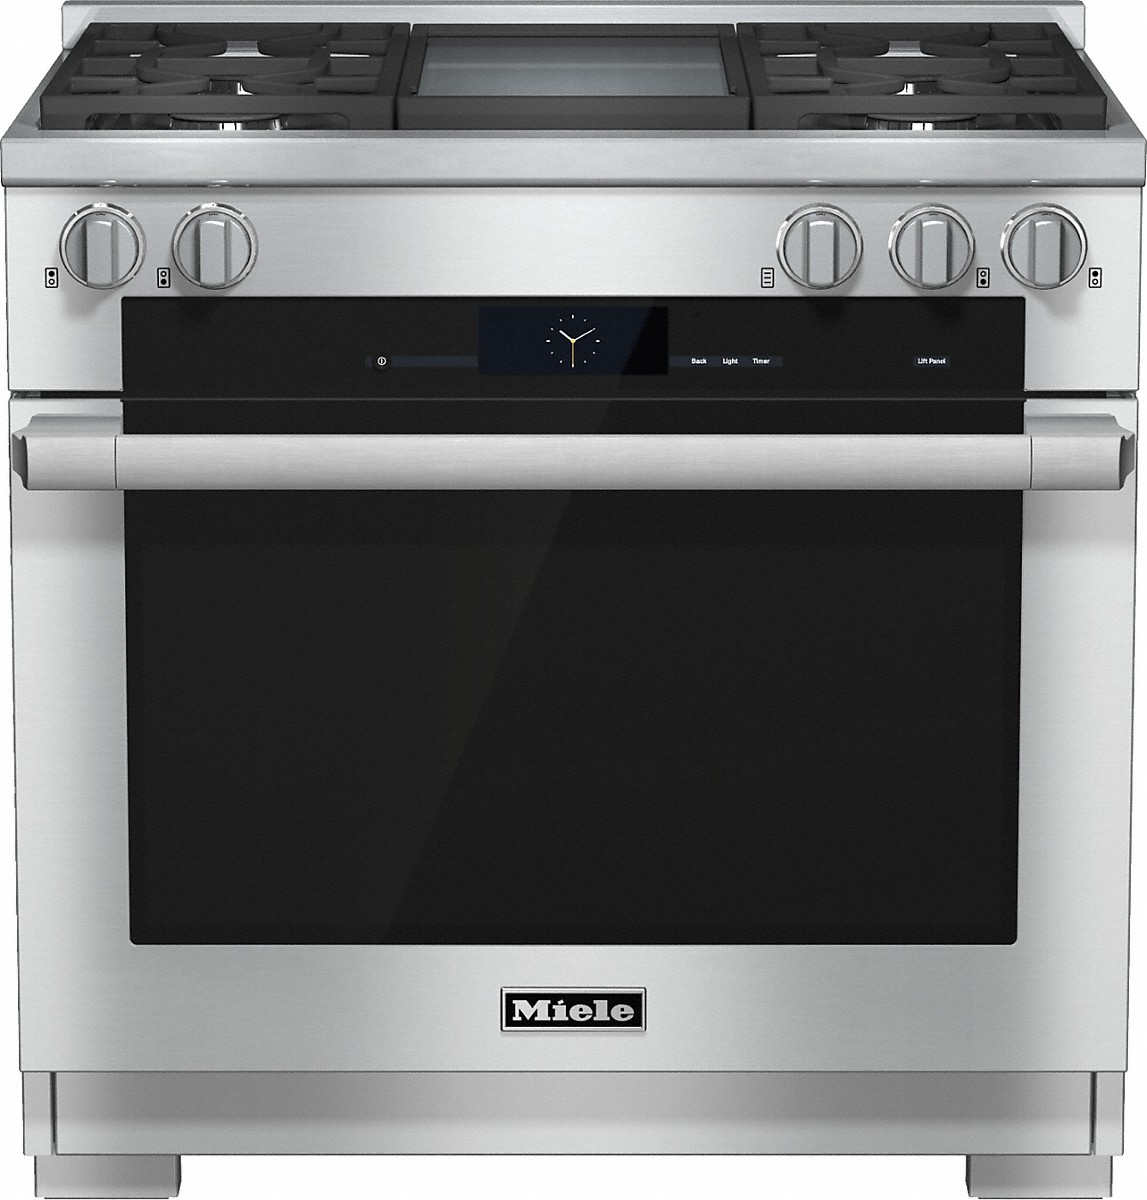 Model: 25193652USA | Miele 36 inch rangeDual Fuel with M Touch controls, Moisture Plus and M Pro dual stacked burners